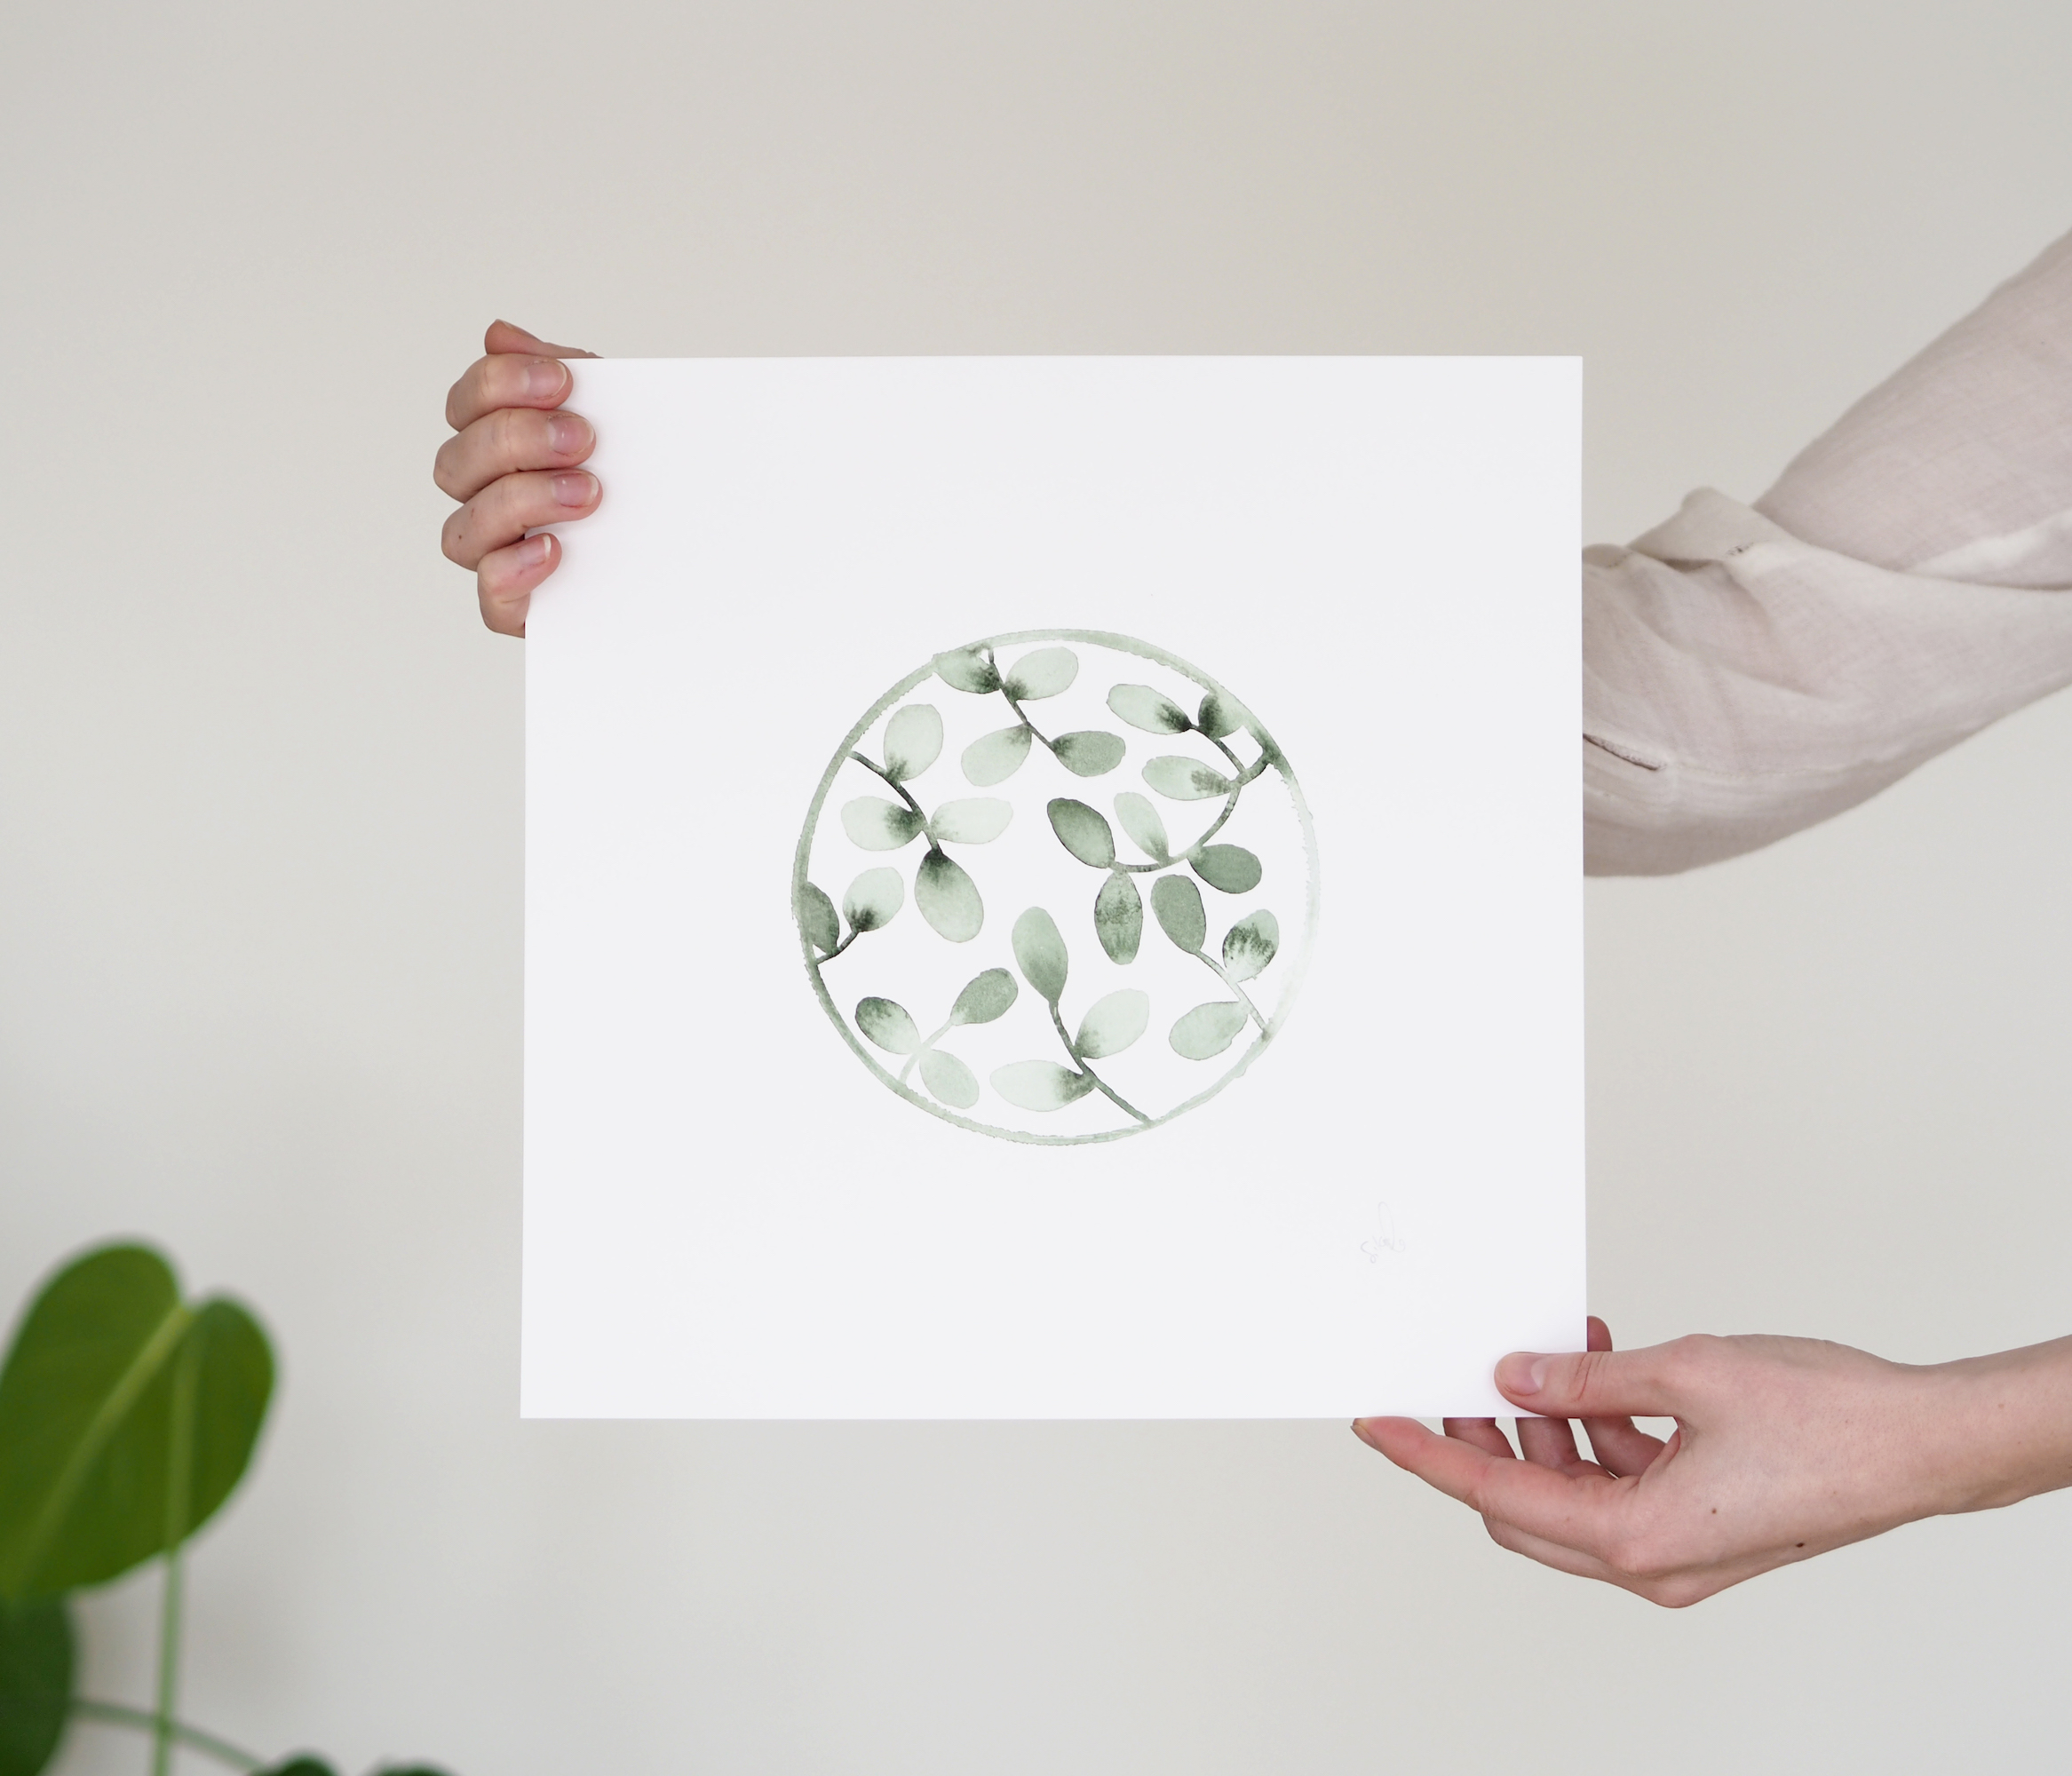 Greenhouse art prints by Silke Bonde